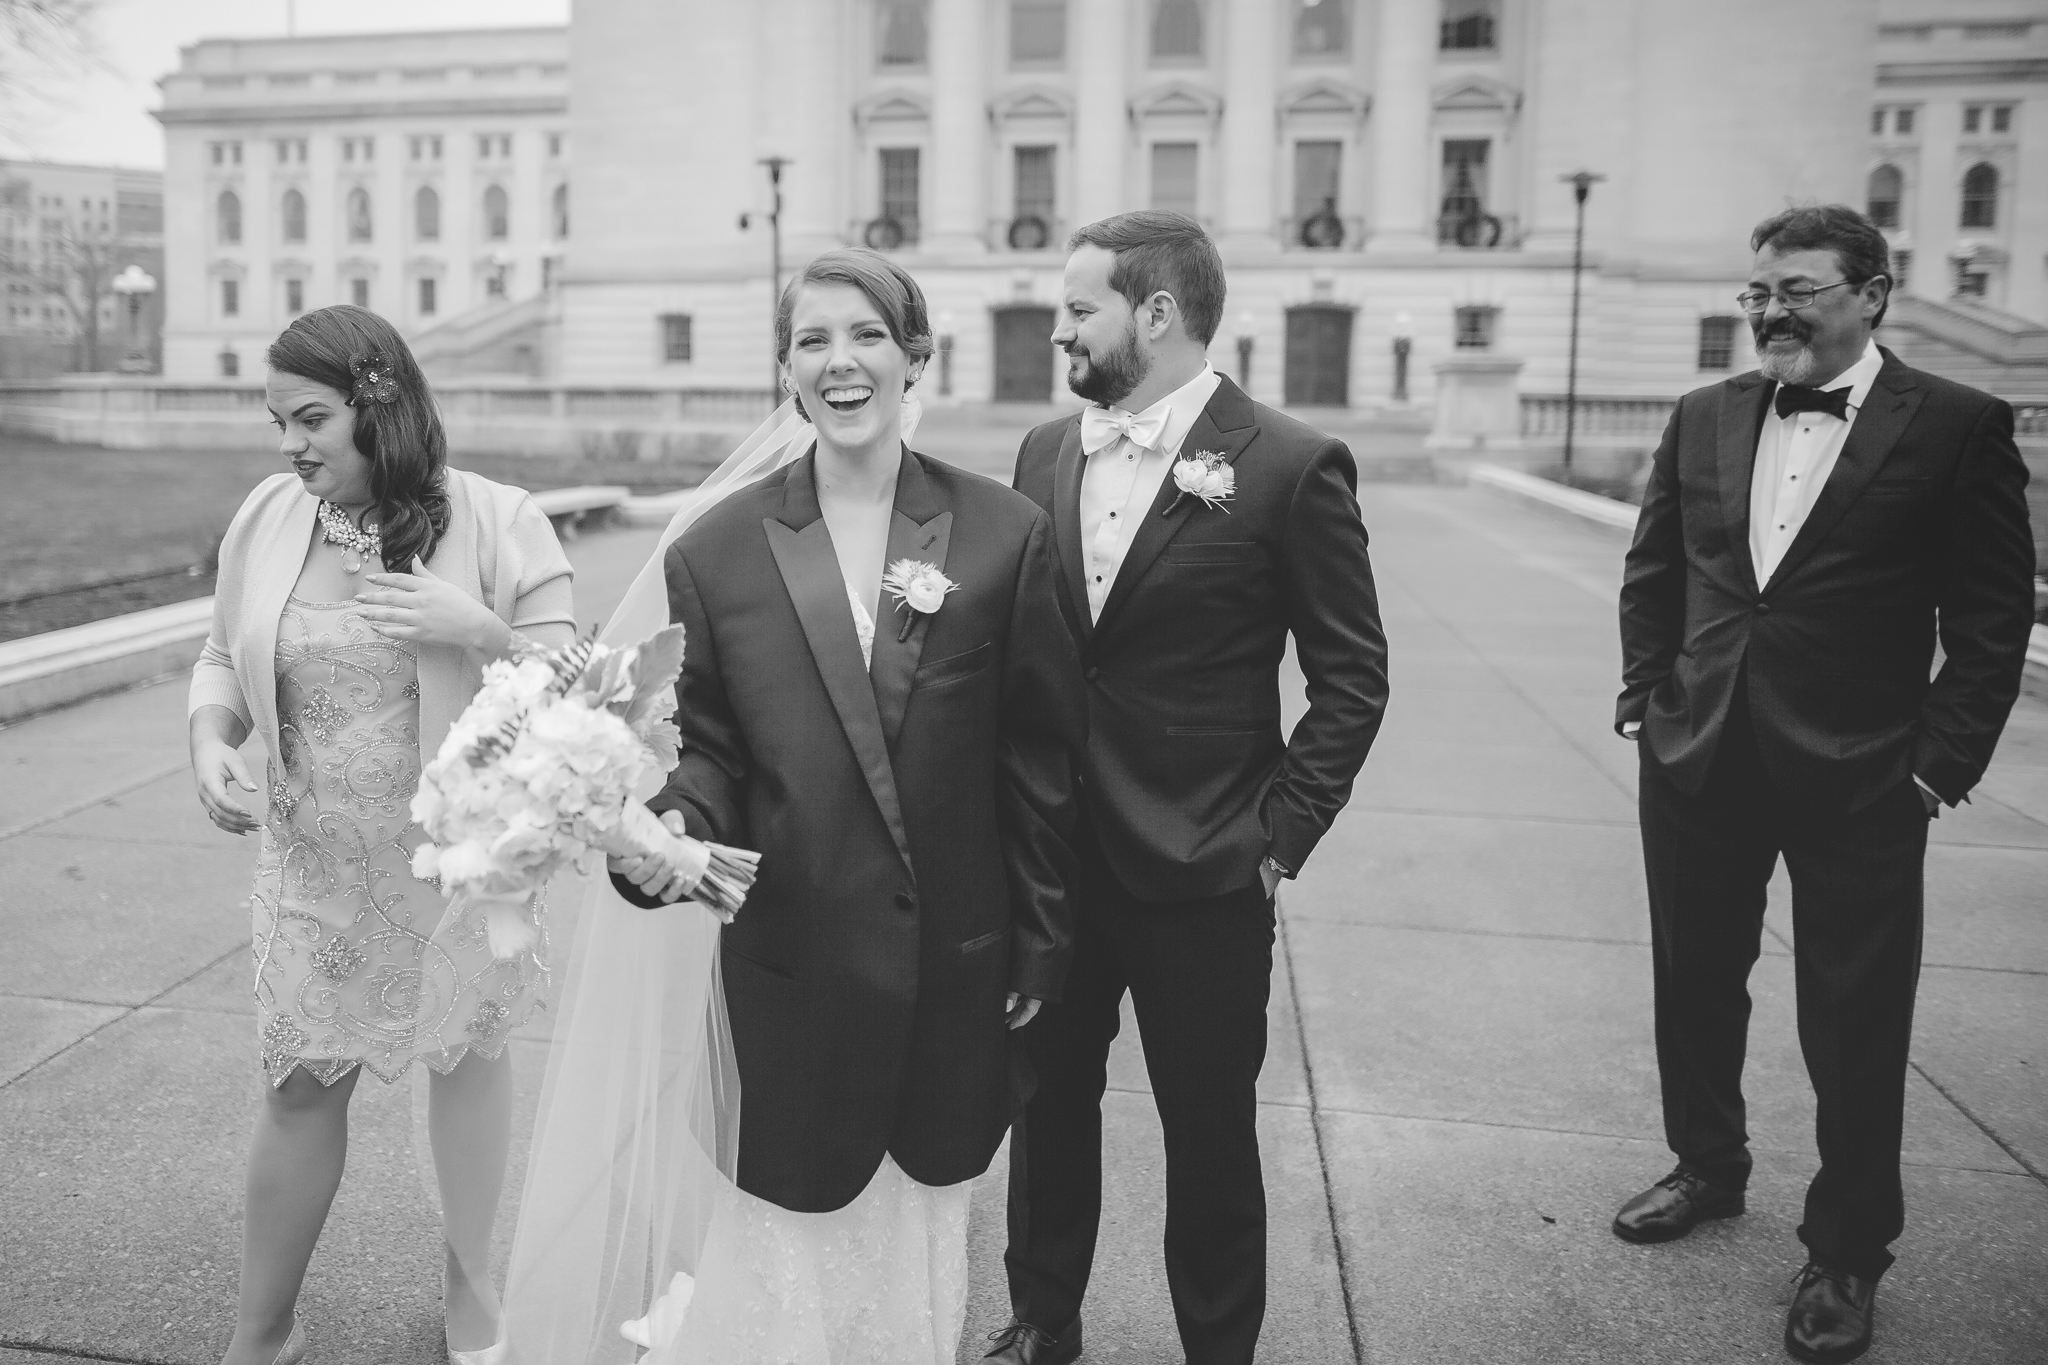 minneapolis winter wedding photographer-7.jpg